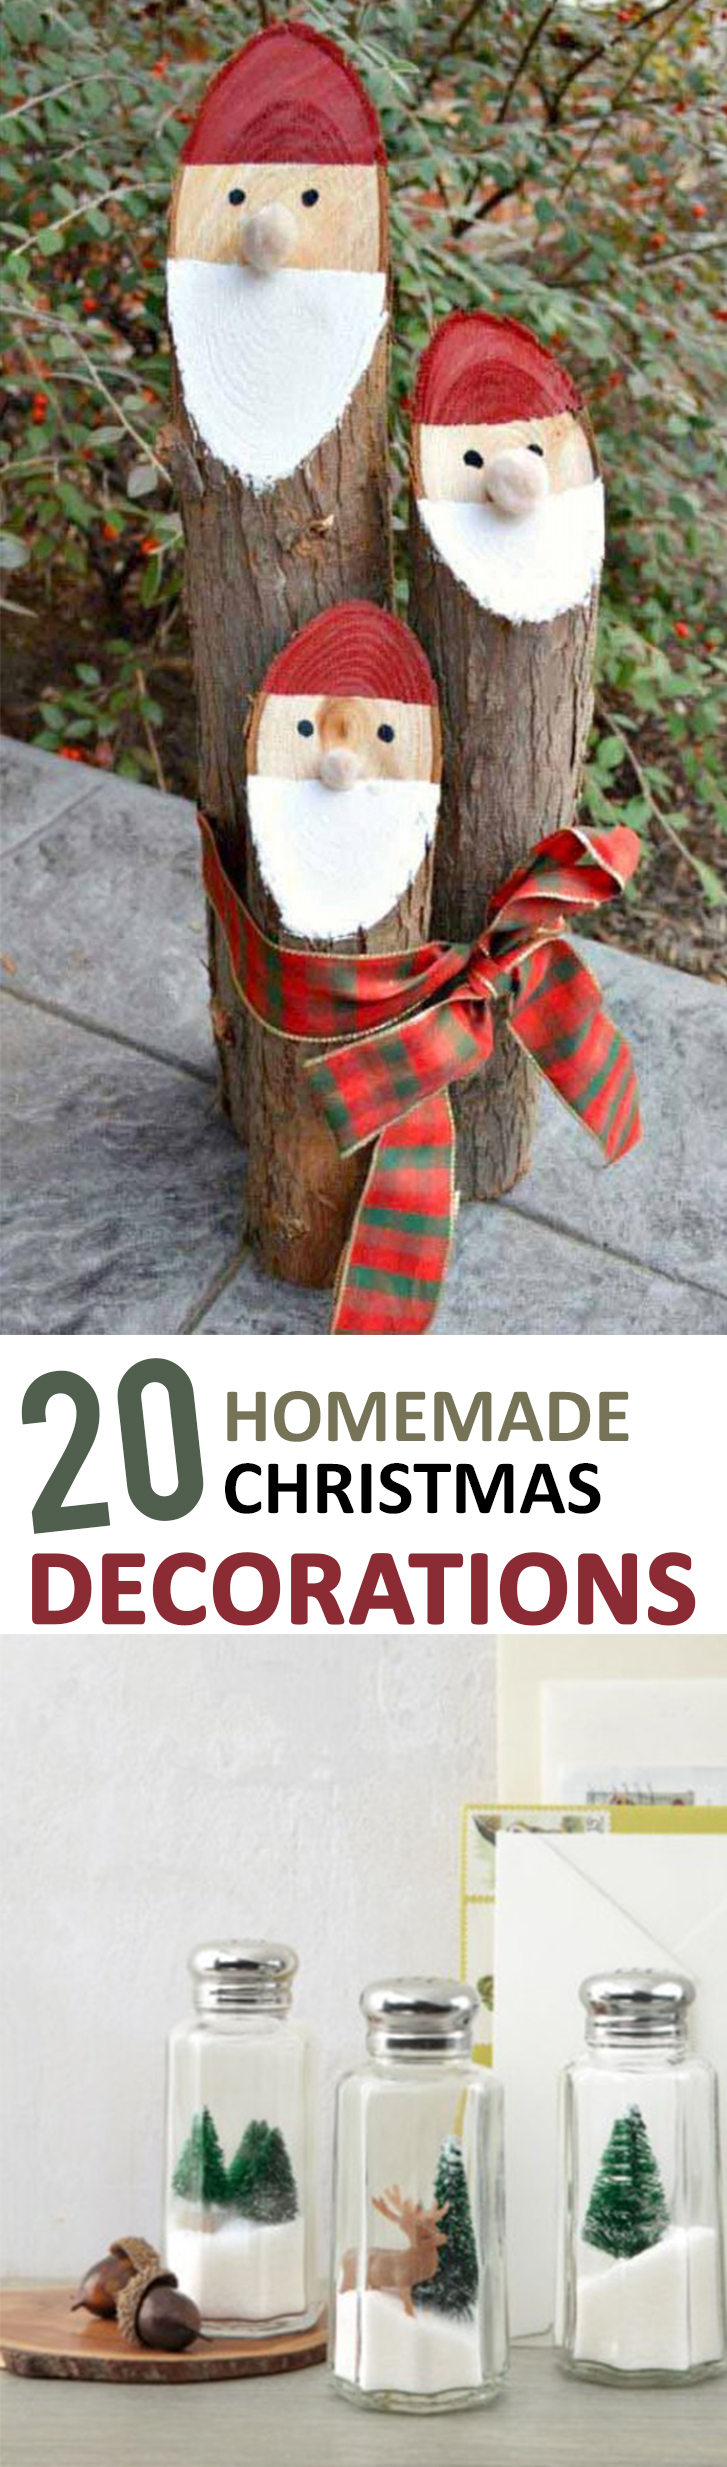 20 Homemade Christmas Decorations Home Decorators Catalog Best Ideas of Home Decor and Design [homedecoratorscatalog.us]